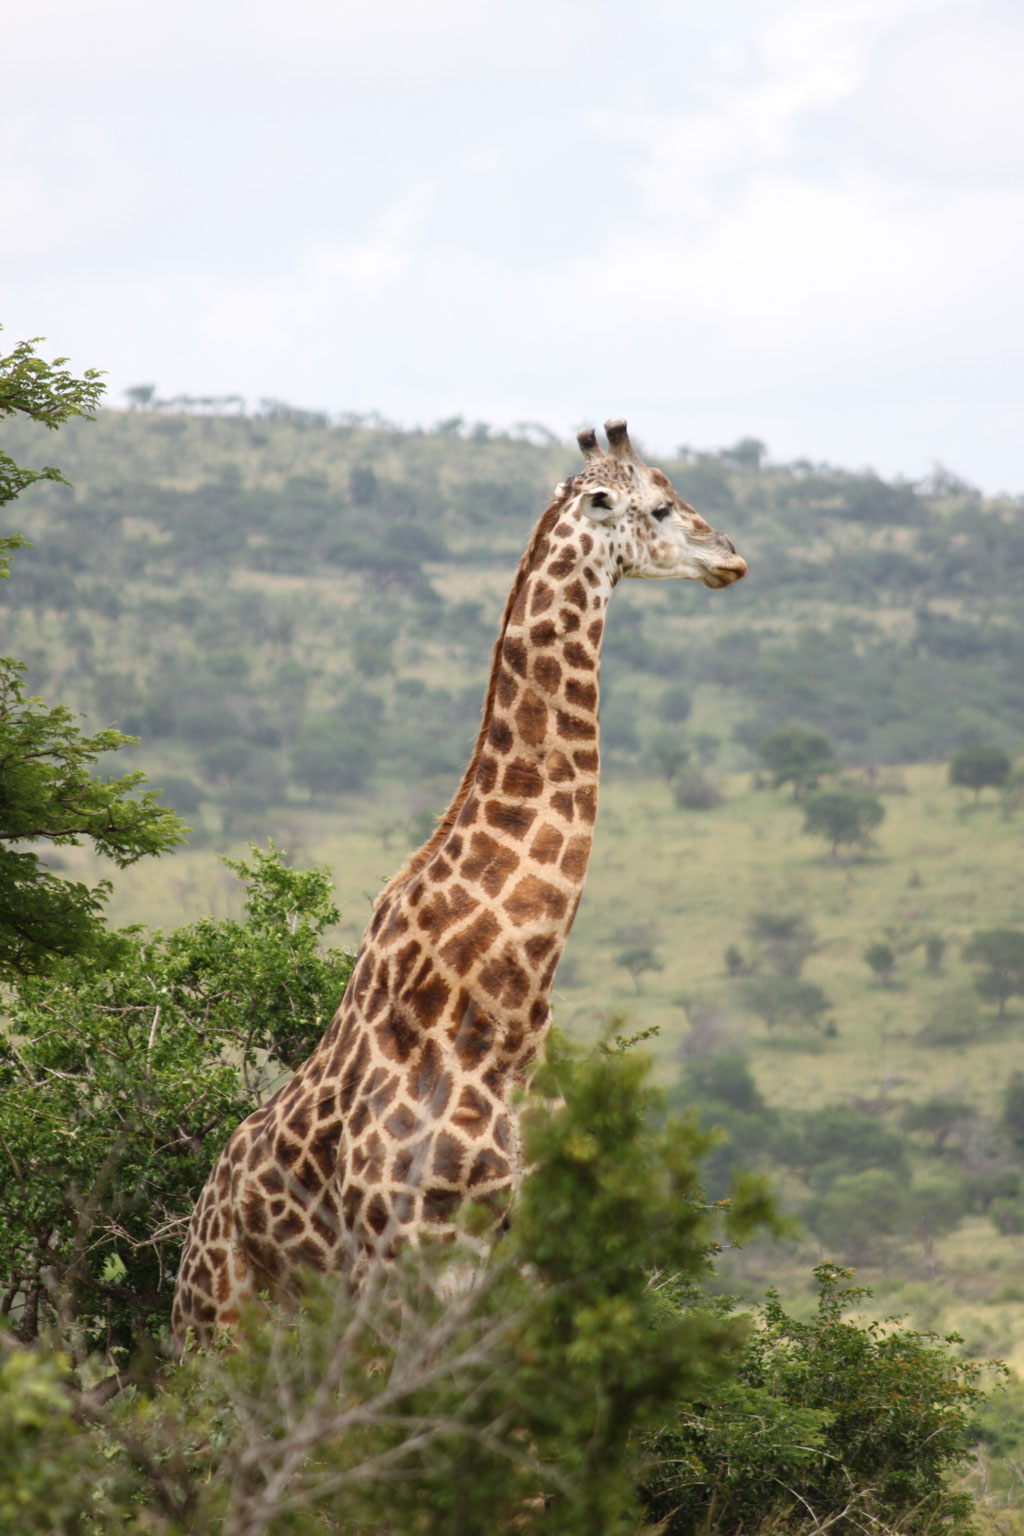 Giraffe, St Lucia, South Africa